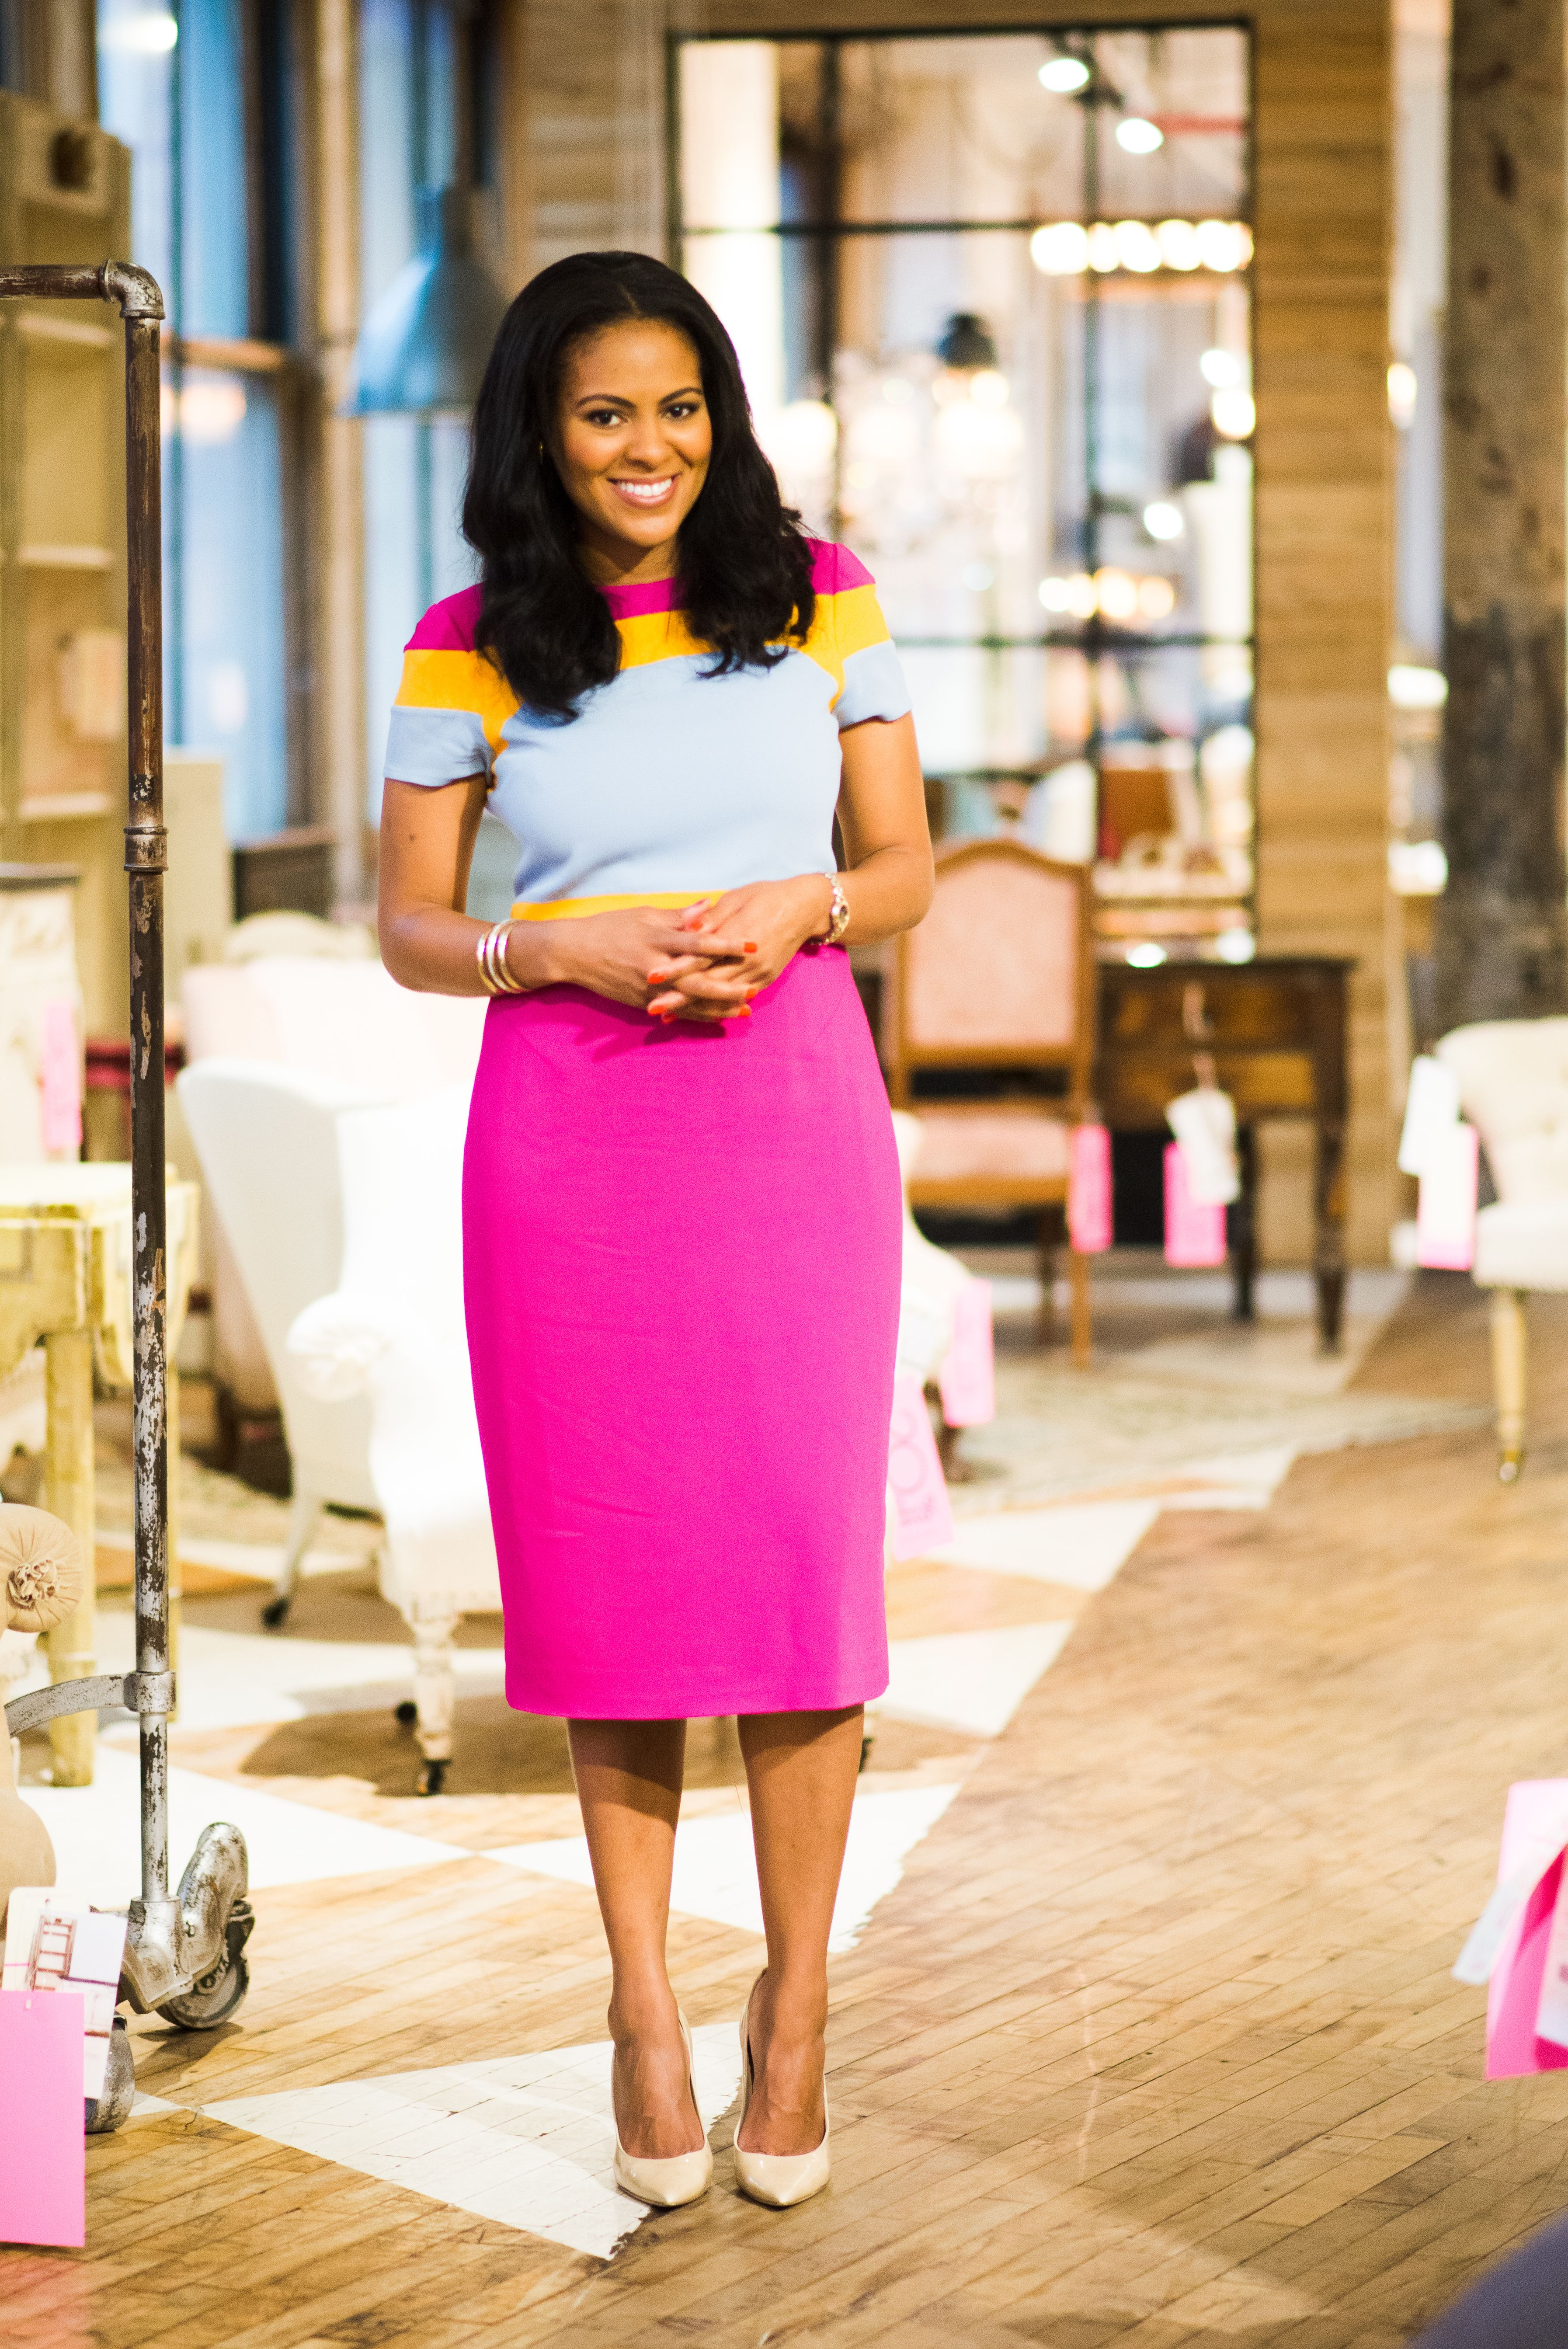 Our Favorite Interior Designer And On Air Personality Nicolegibbons1 Shares Her Myoutfit Levoleague